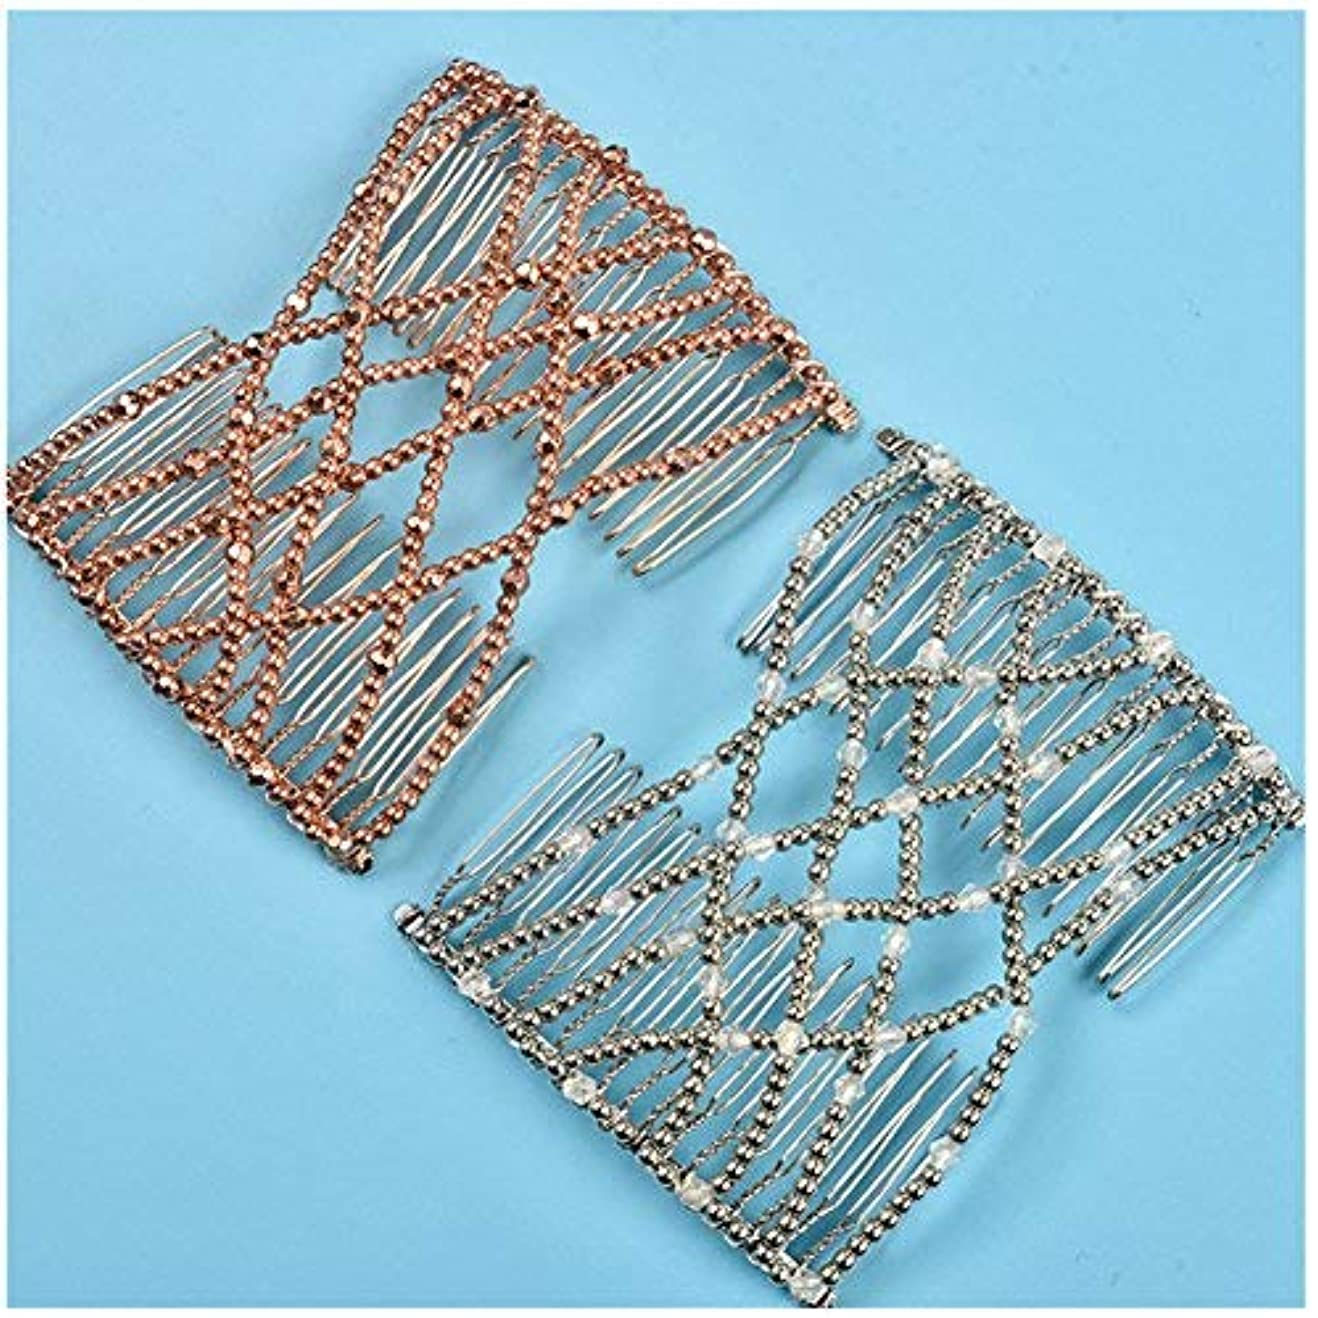 Lovef 2pcs Fashion Magic Beaded Elasticity Double Hair Comb Clip Stretchy Women Hair Accessories [並行輸入品]